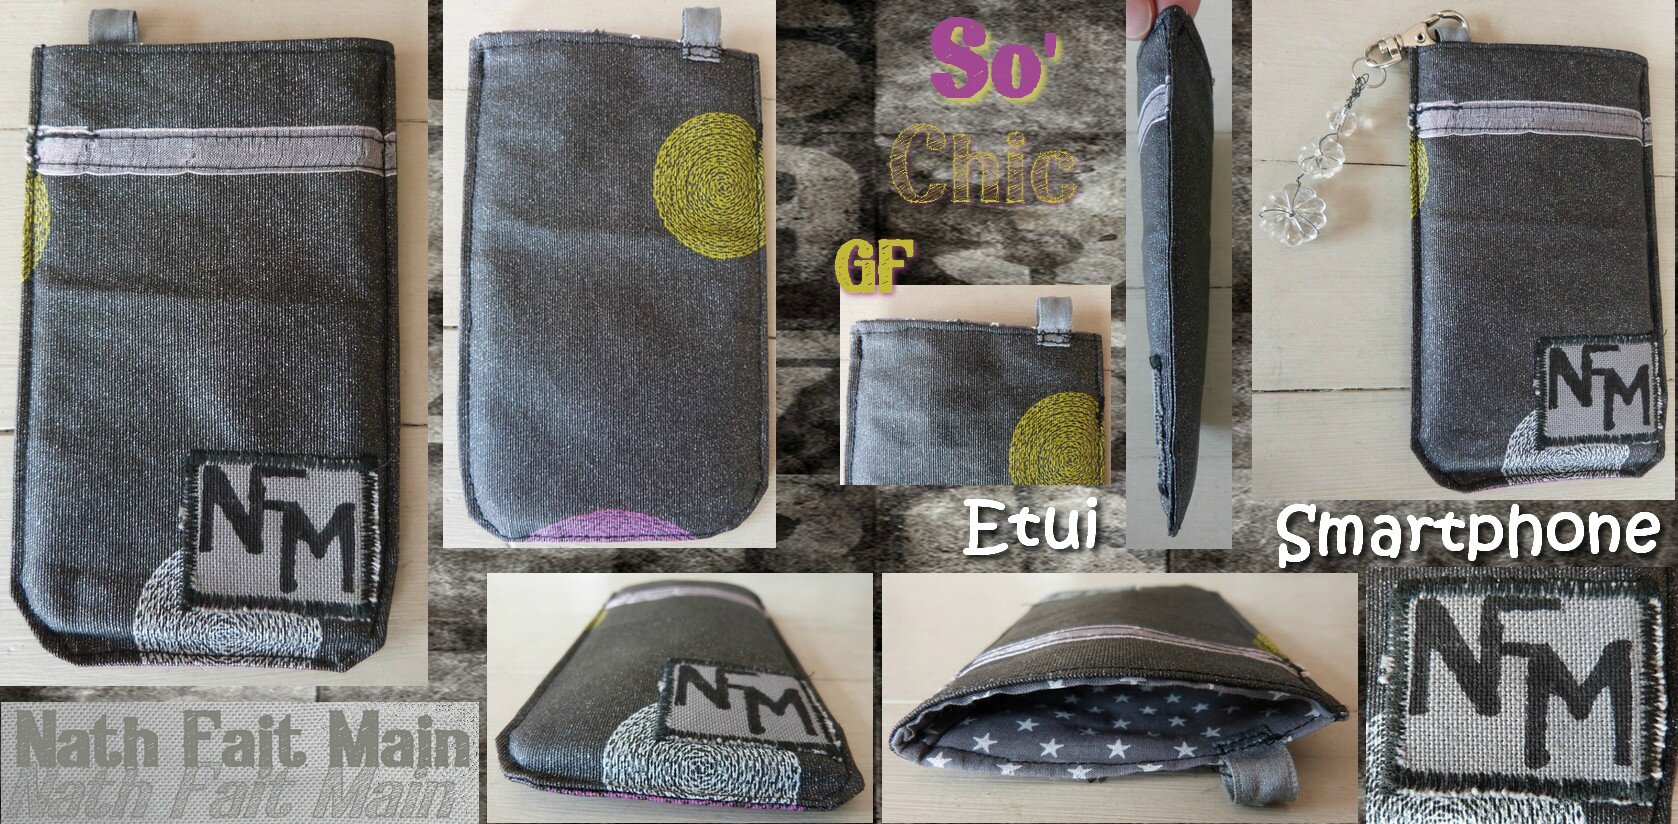 Etui smartphone So'Chic GF (0)